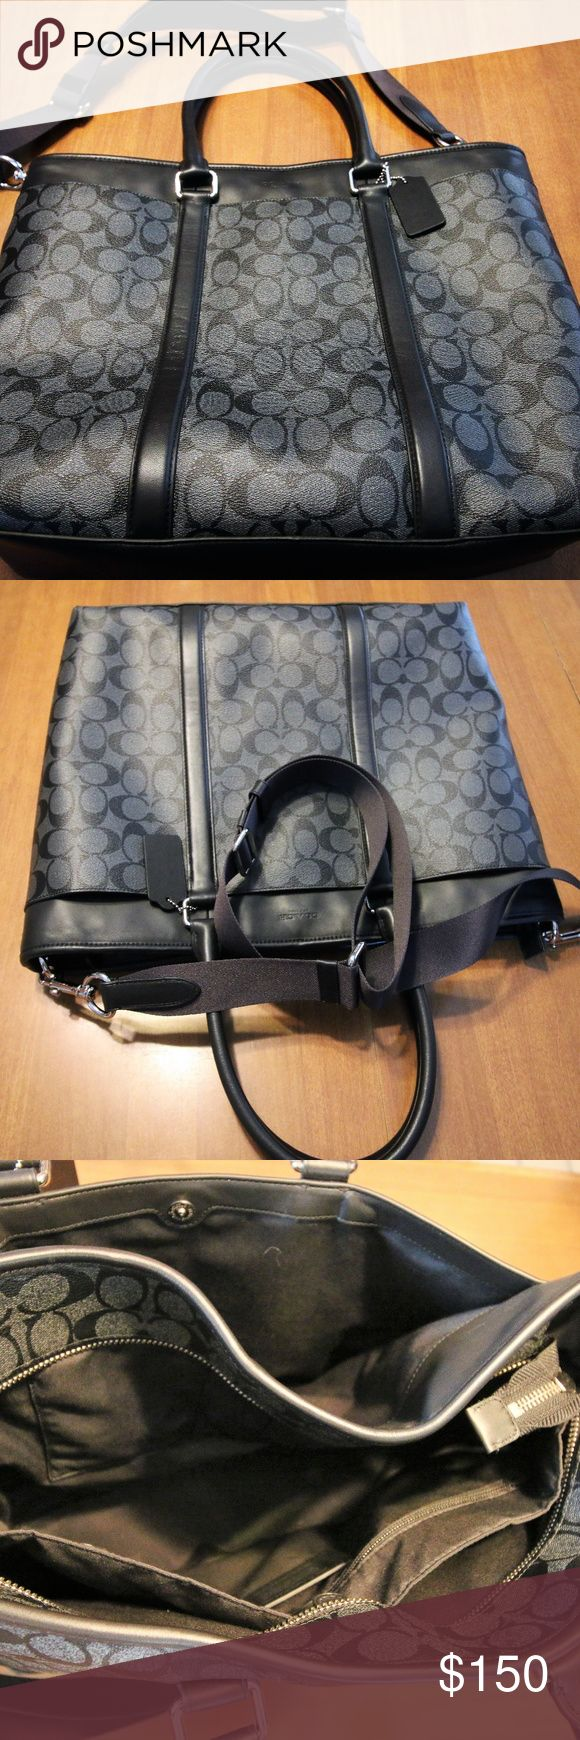 Coach Briefcase Excellent condition Coach briefcase.  Has a padded pocket inside that fits laptop.  Zipped pockets inside and a large outside pocket. Coach Bags